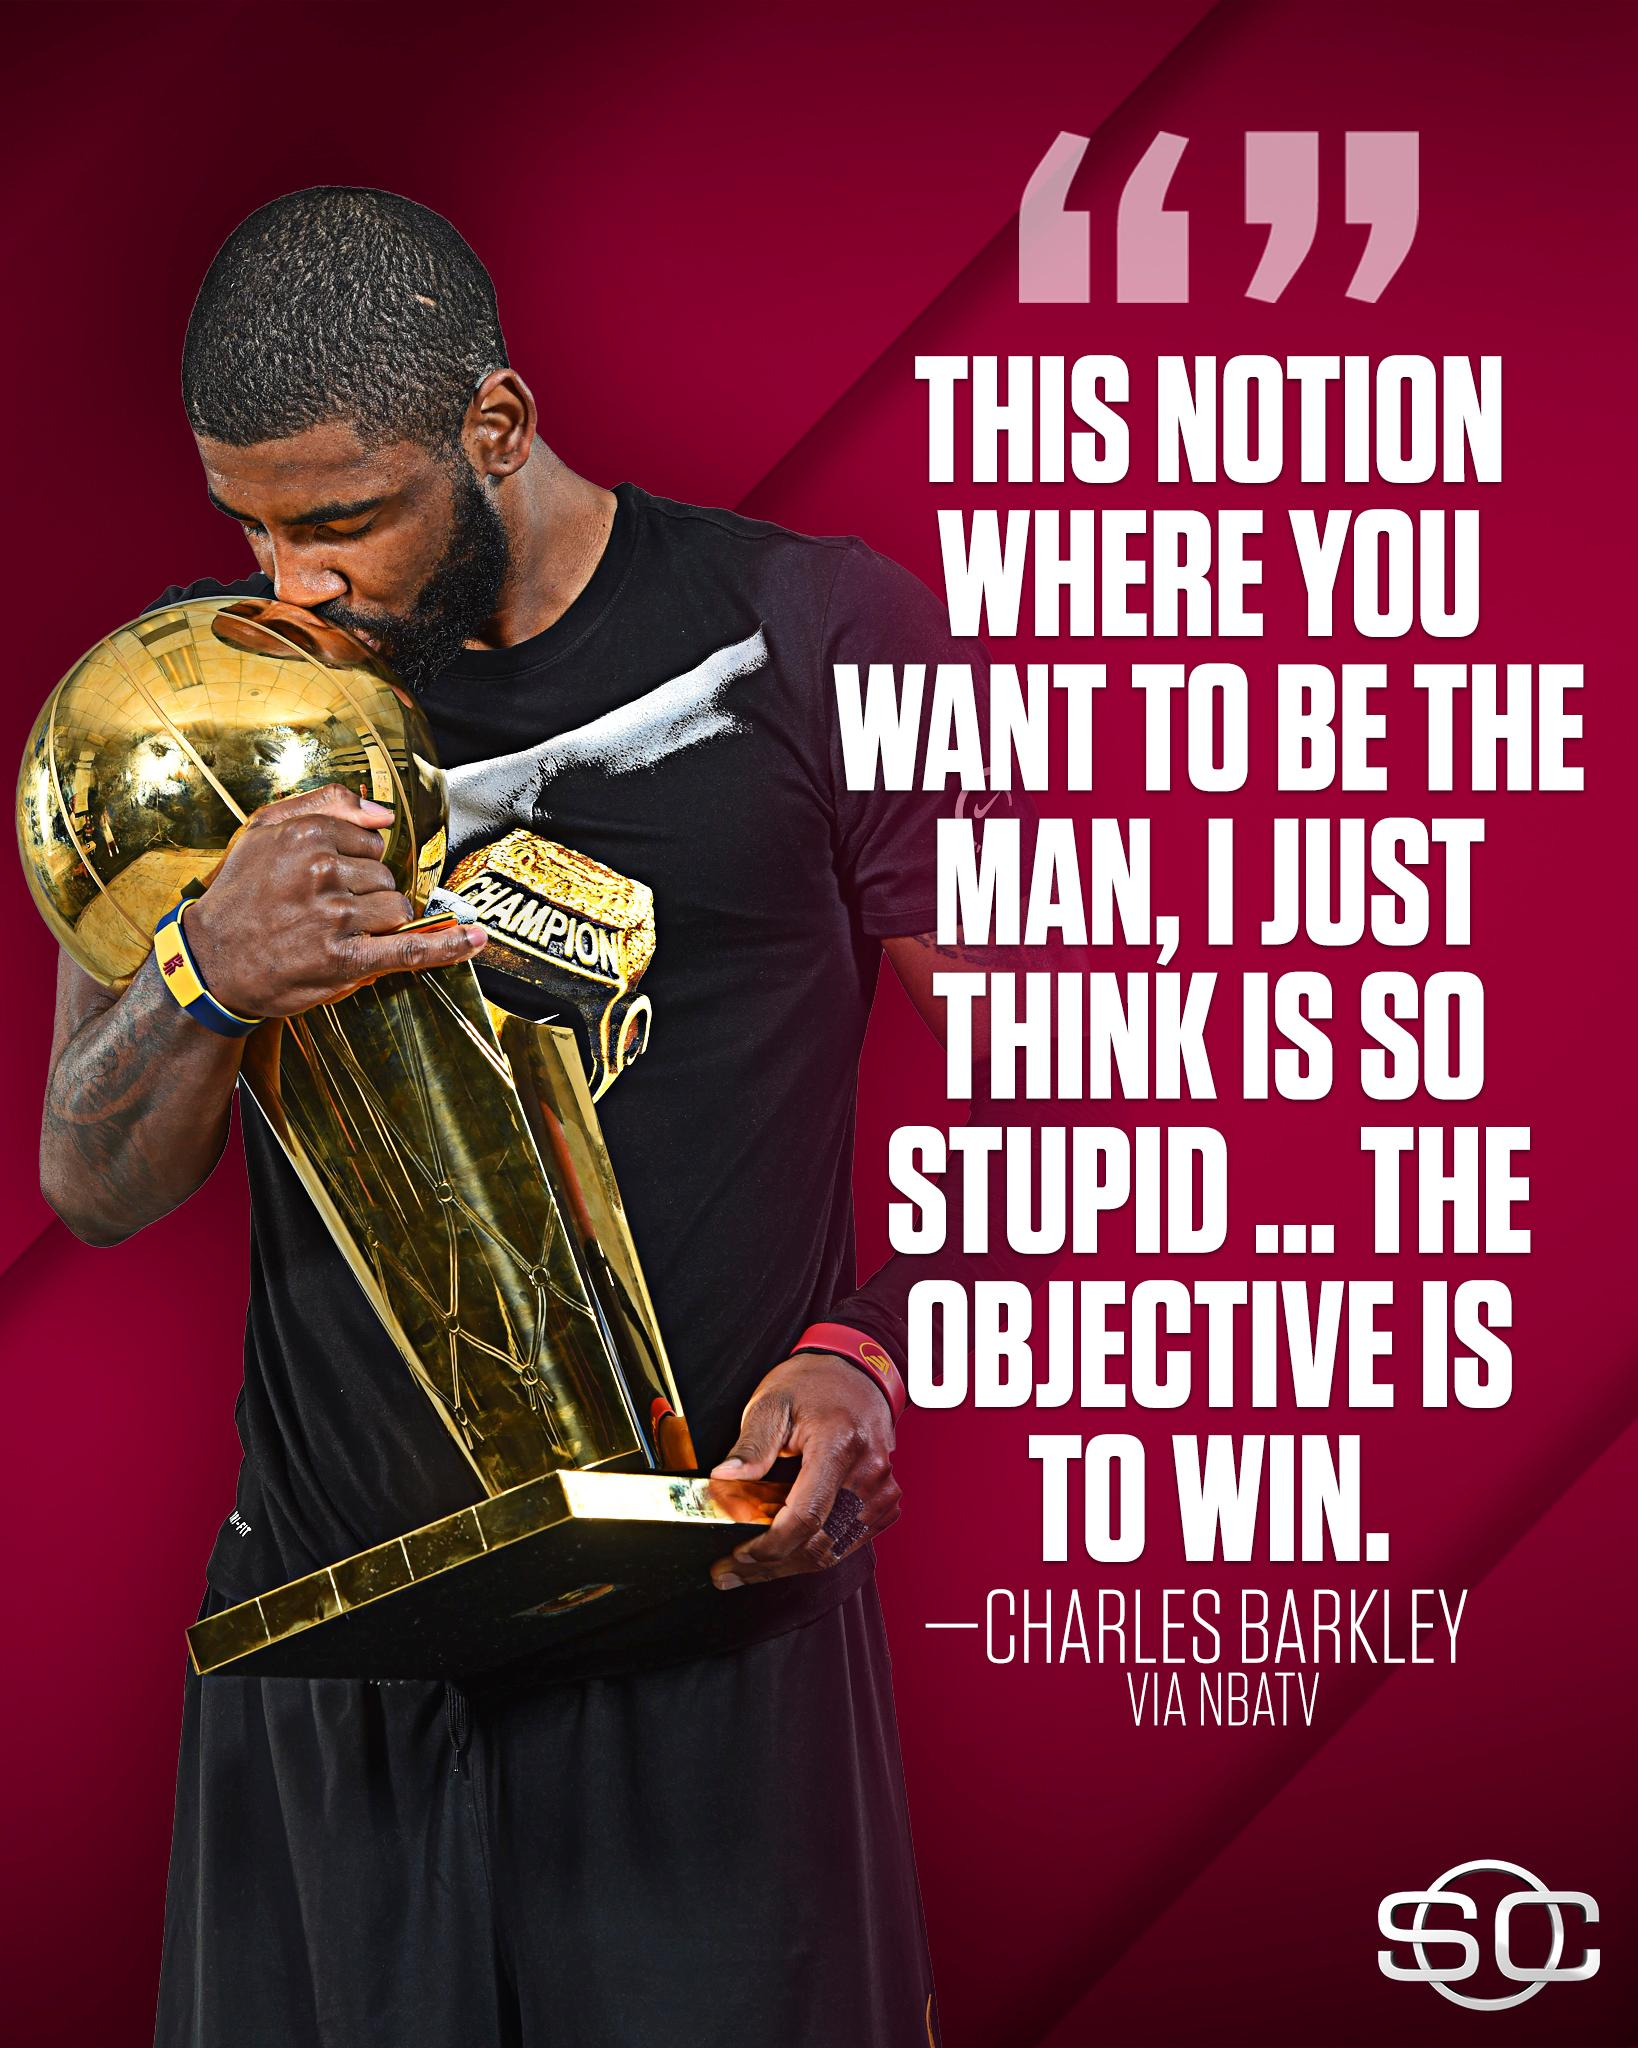 Charles Barkley simply doesn't understand Kyrie's request to leave Cleveland. https://t.co/kR7nC6owVM